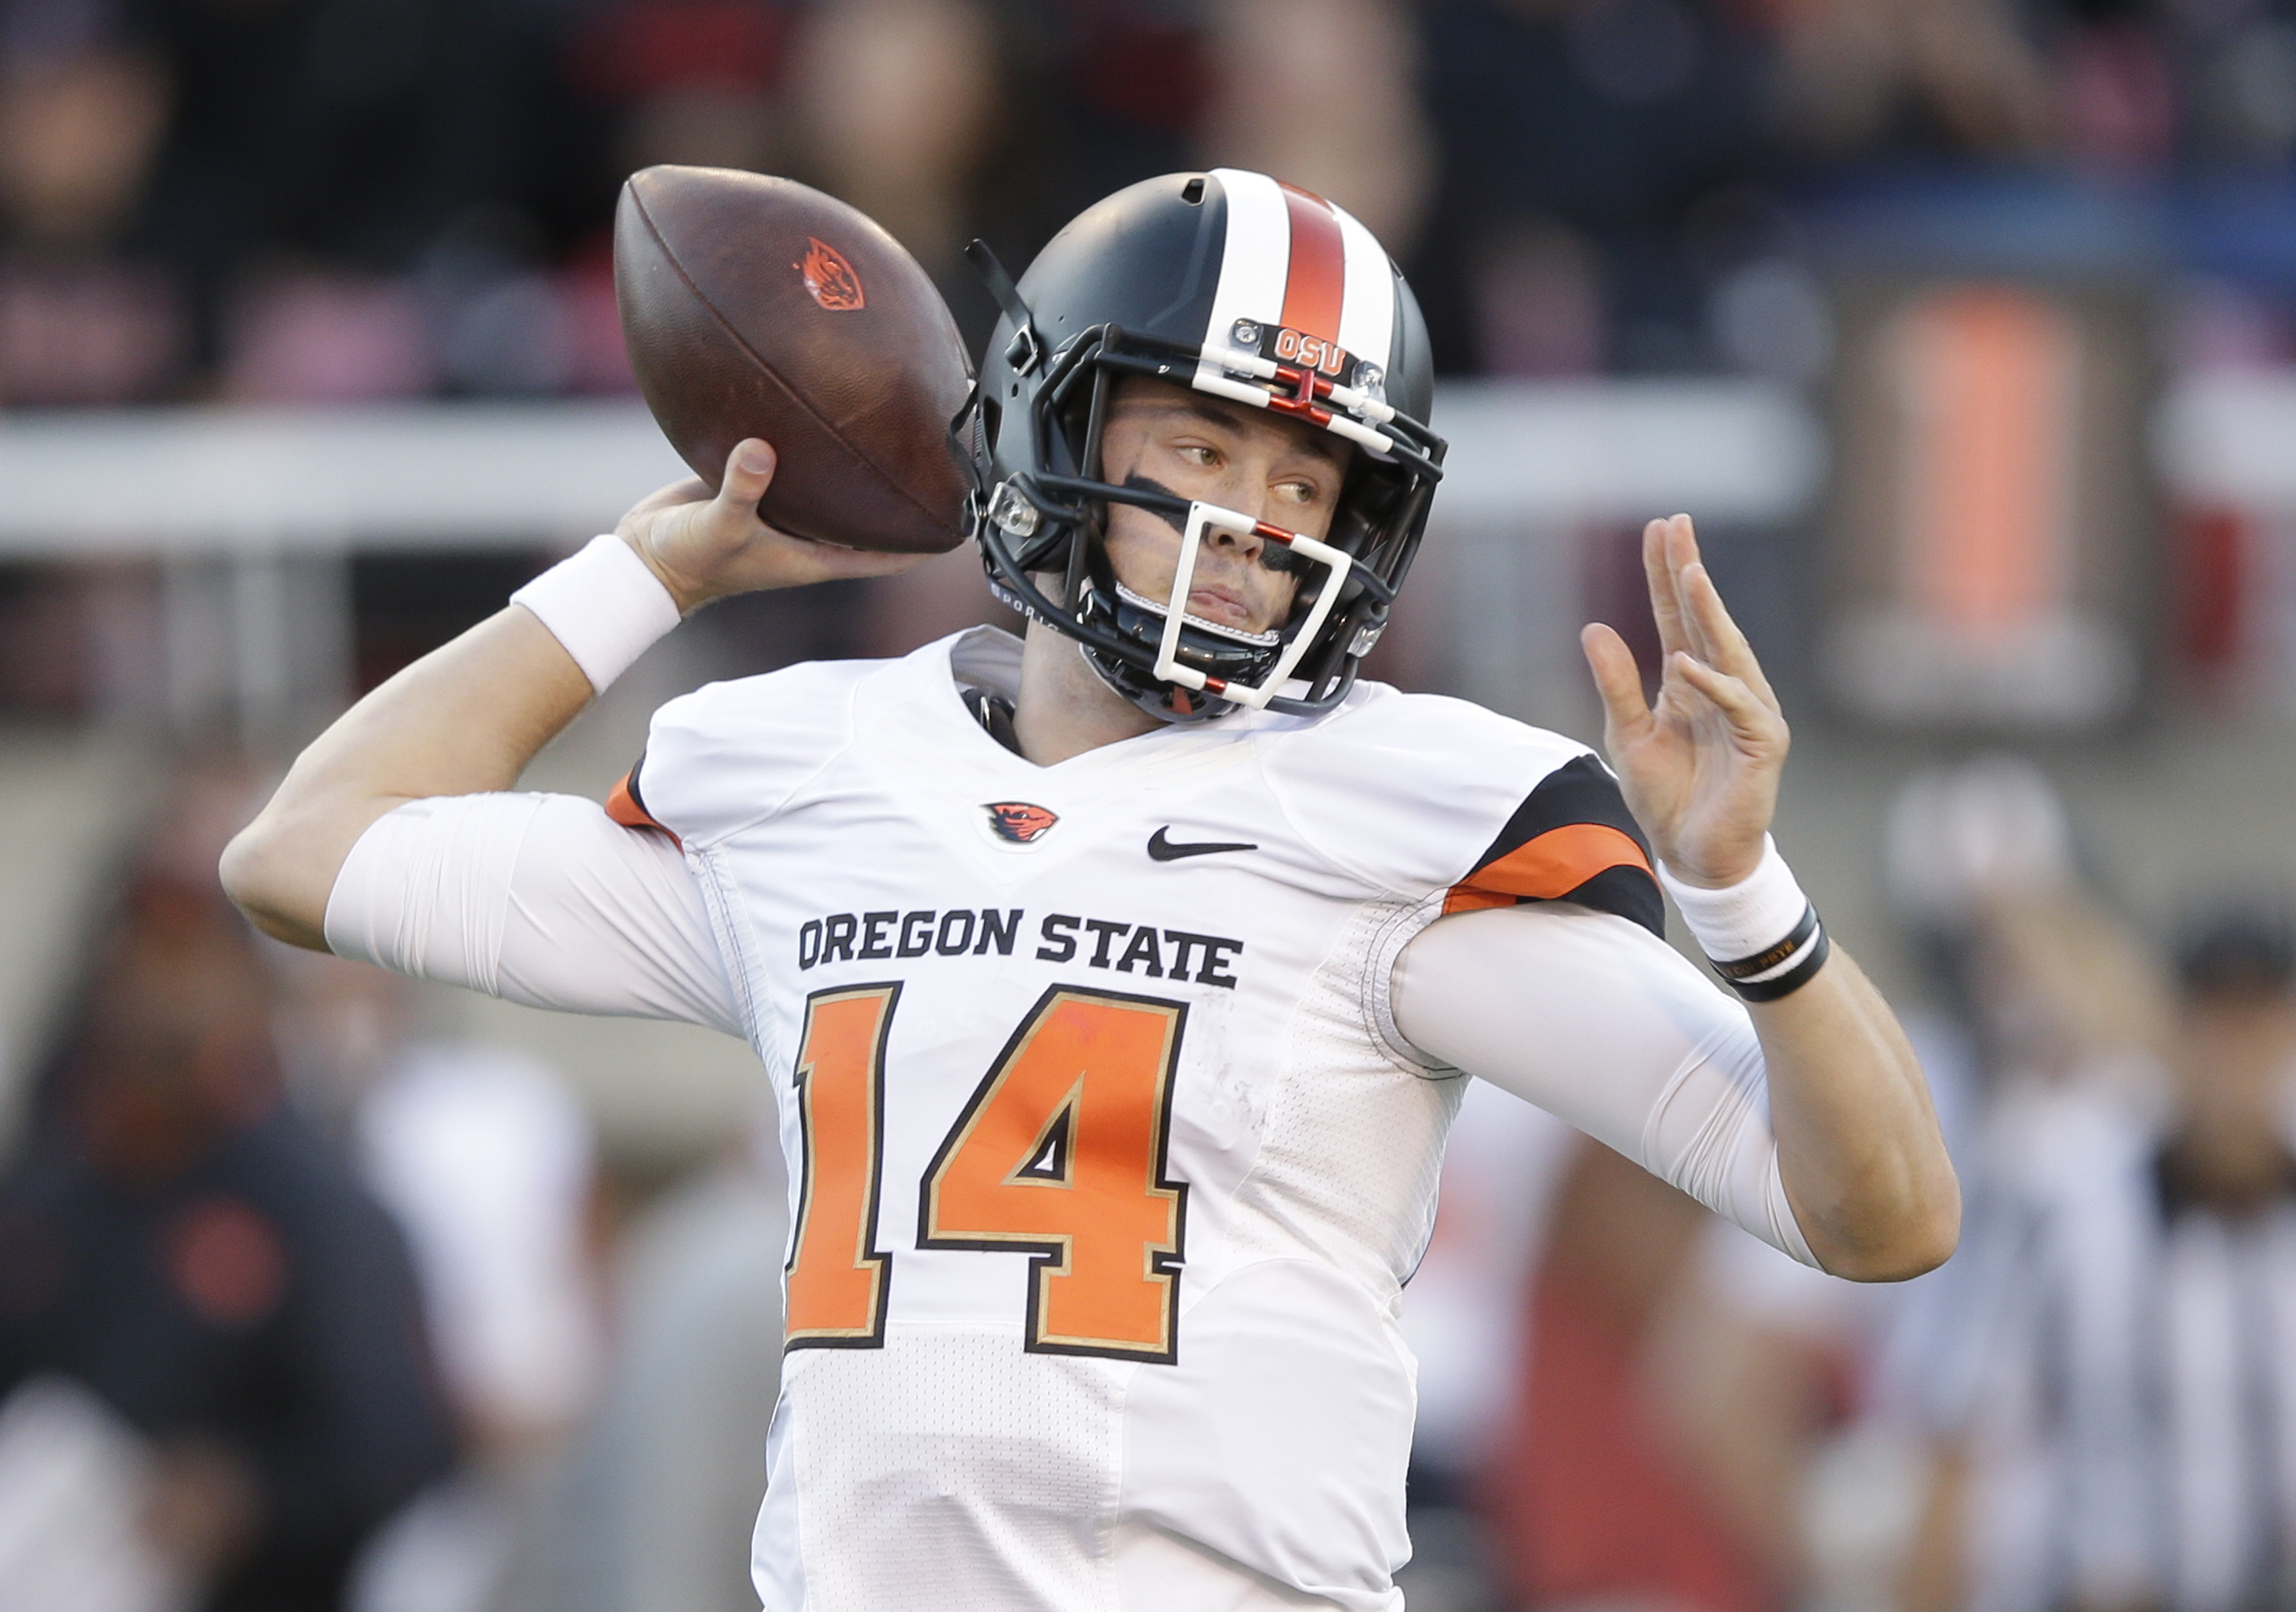 FILE - In this Oct. 31, 2015, file photo, Oregon State quarterback Nick Mitchell (14) passes the ball against Utah in the first quarter during an NCAA college football game, in Salt Lake City. Washington plays at Oregon State on Saturday. (AP Photo/Rick B